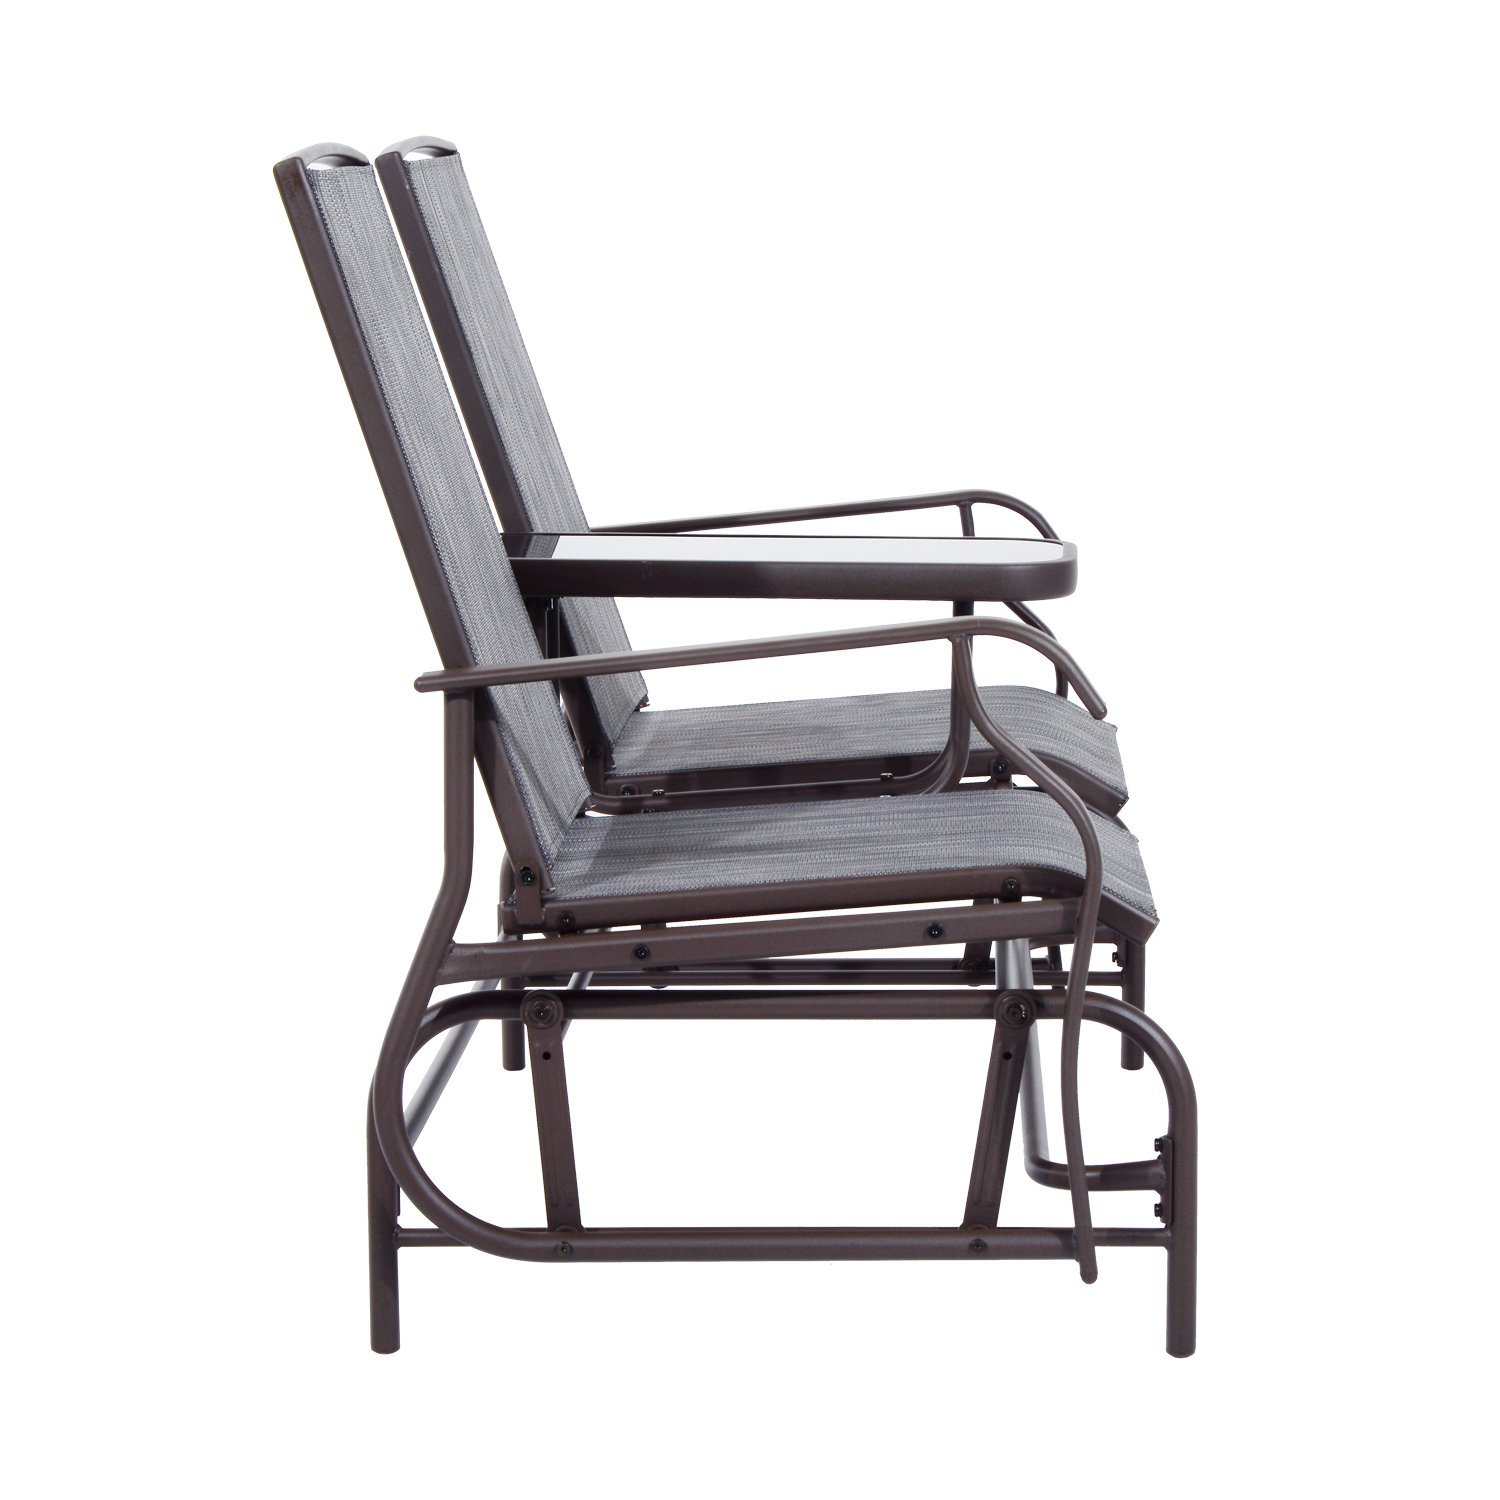 Outsunny Metal Double Swing Chair Glider Rocking Chair Seat